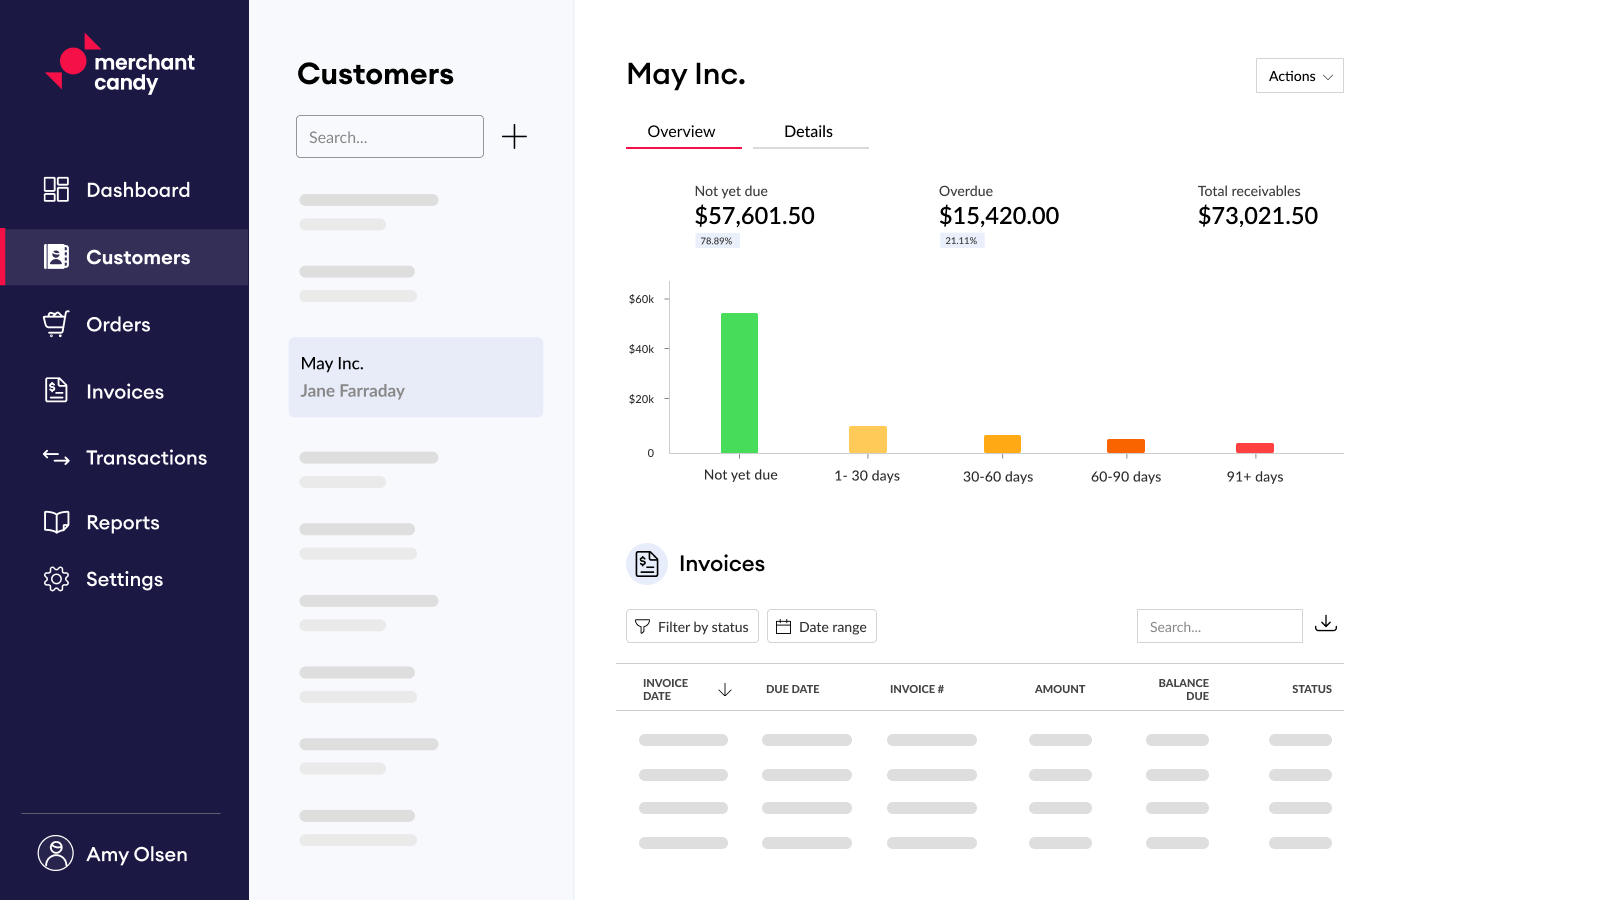 Customer details page